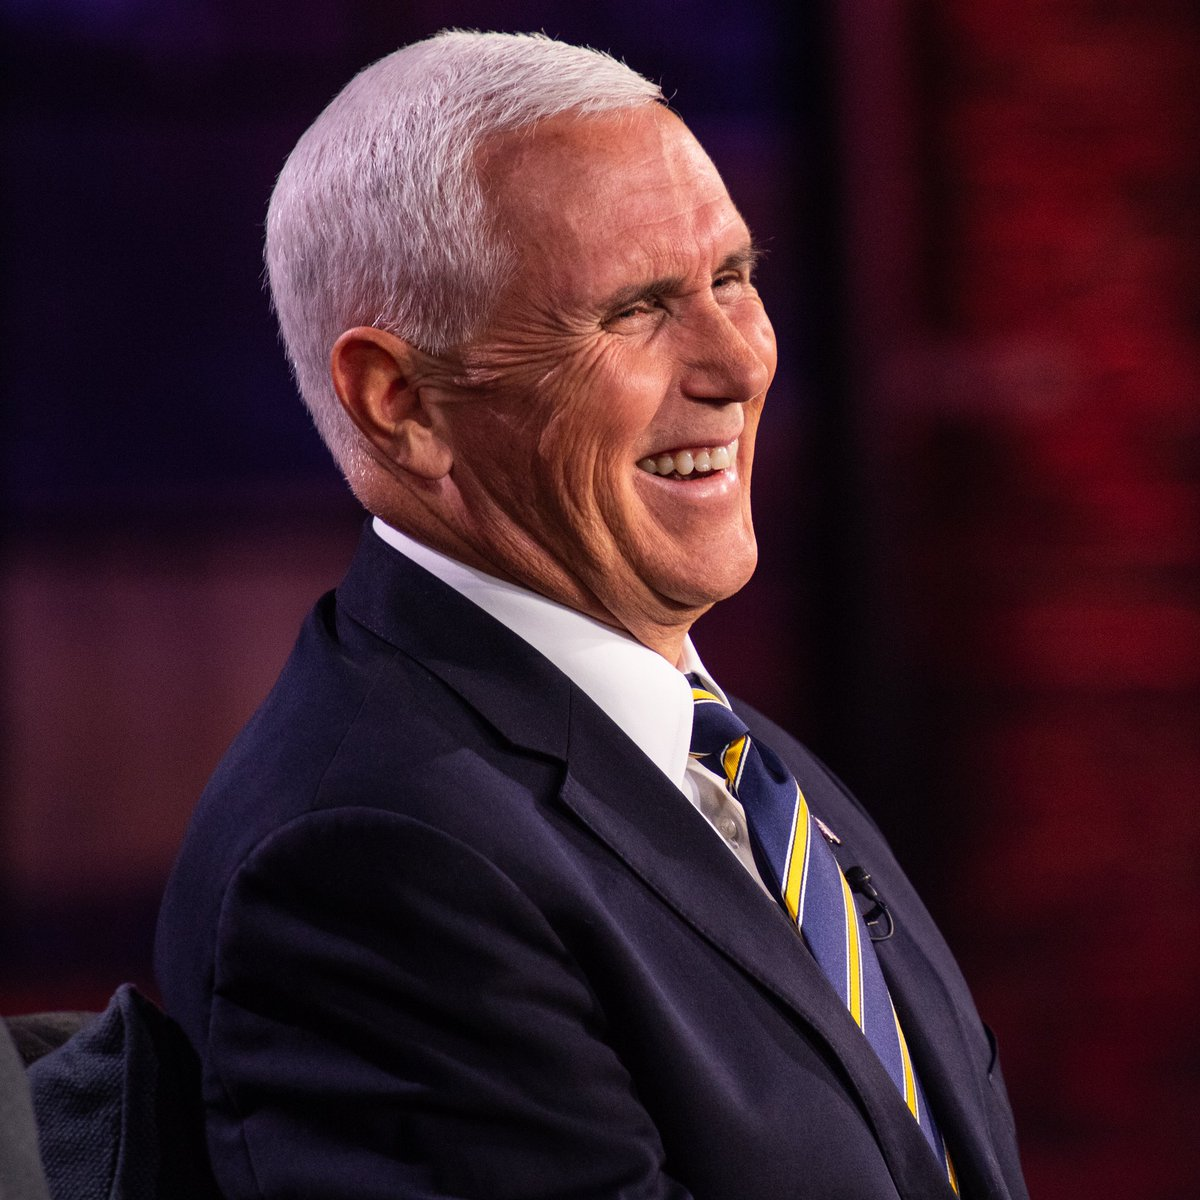 2nite on huckabee.tv 8/11pmET @TBN @VP talks impeachment, trade, elections and more.